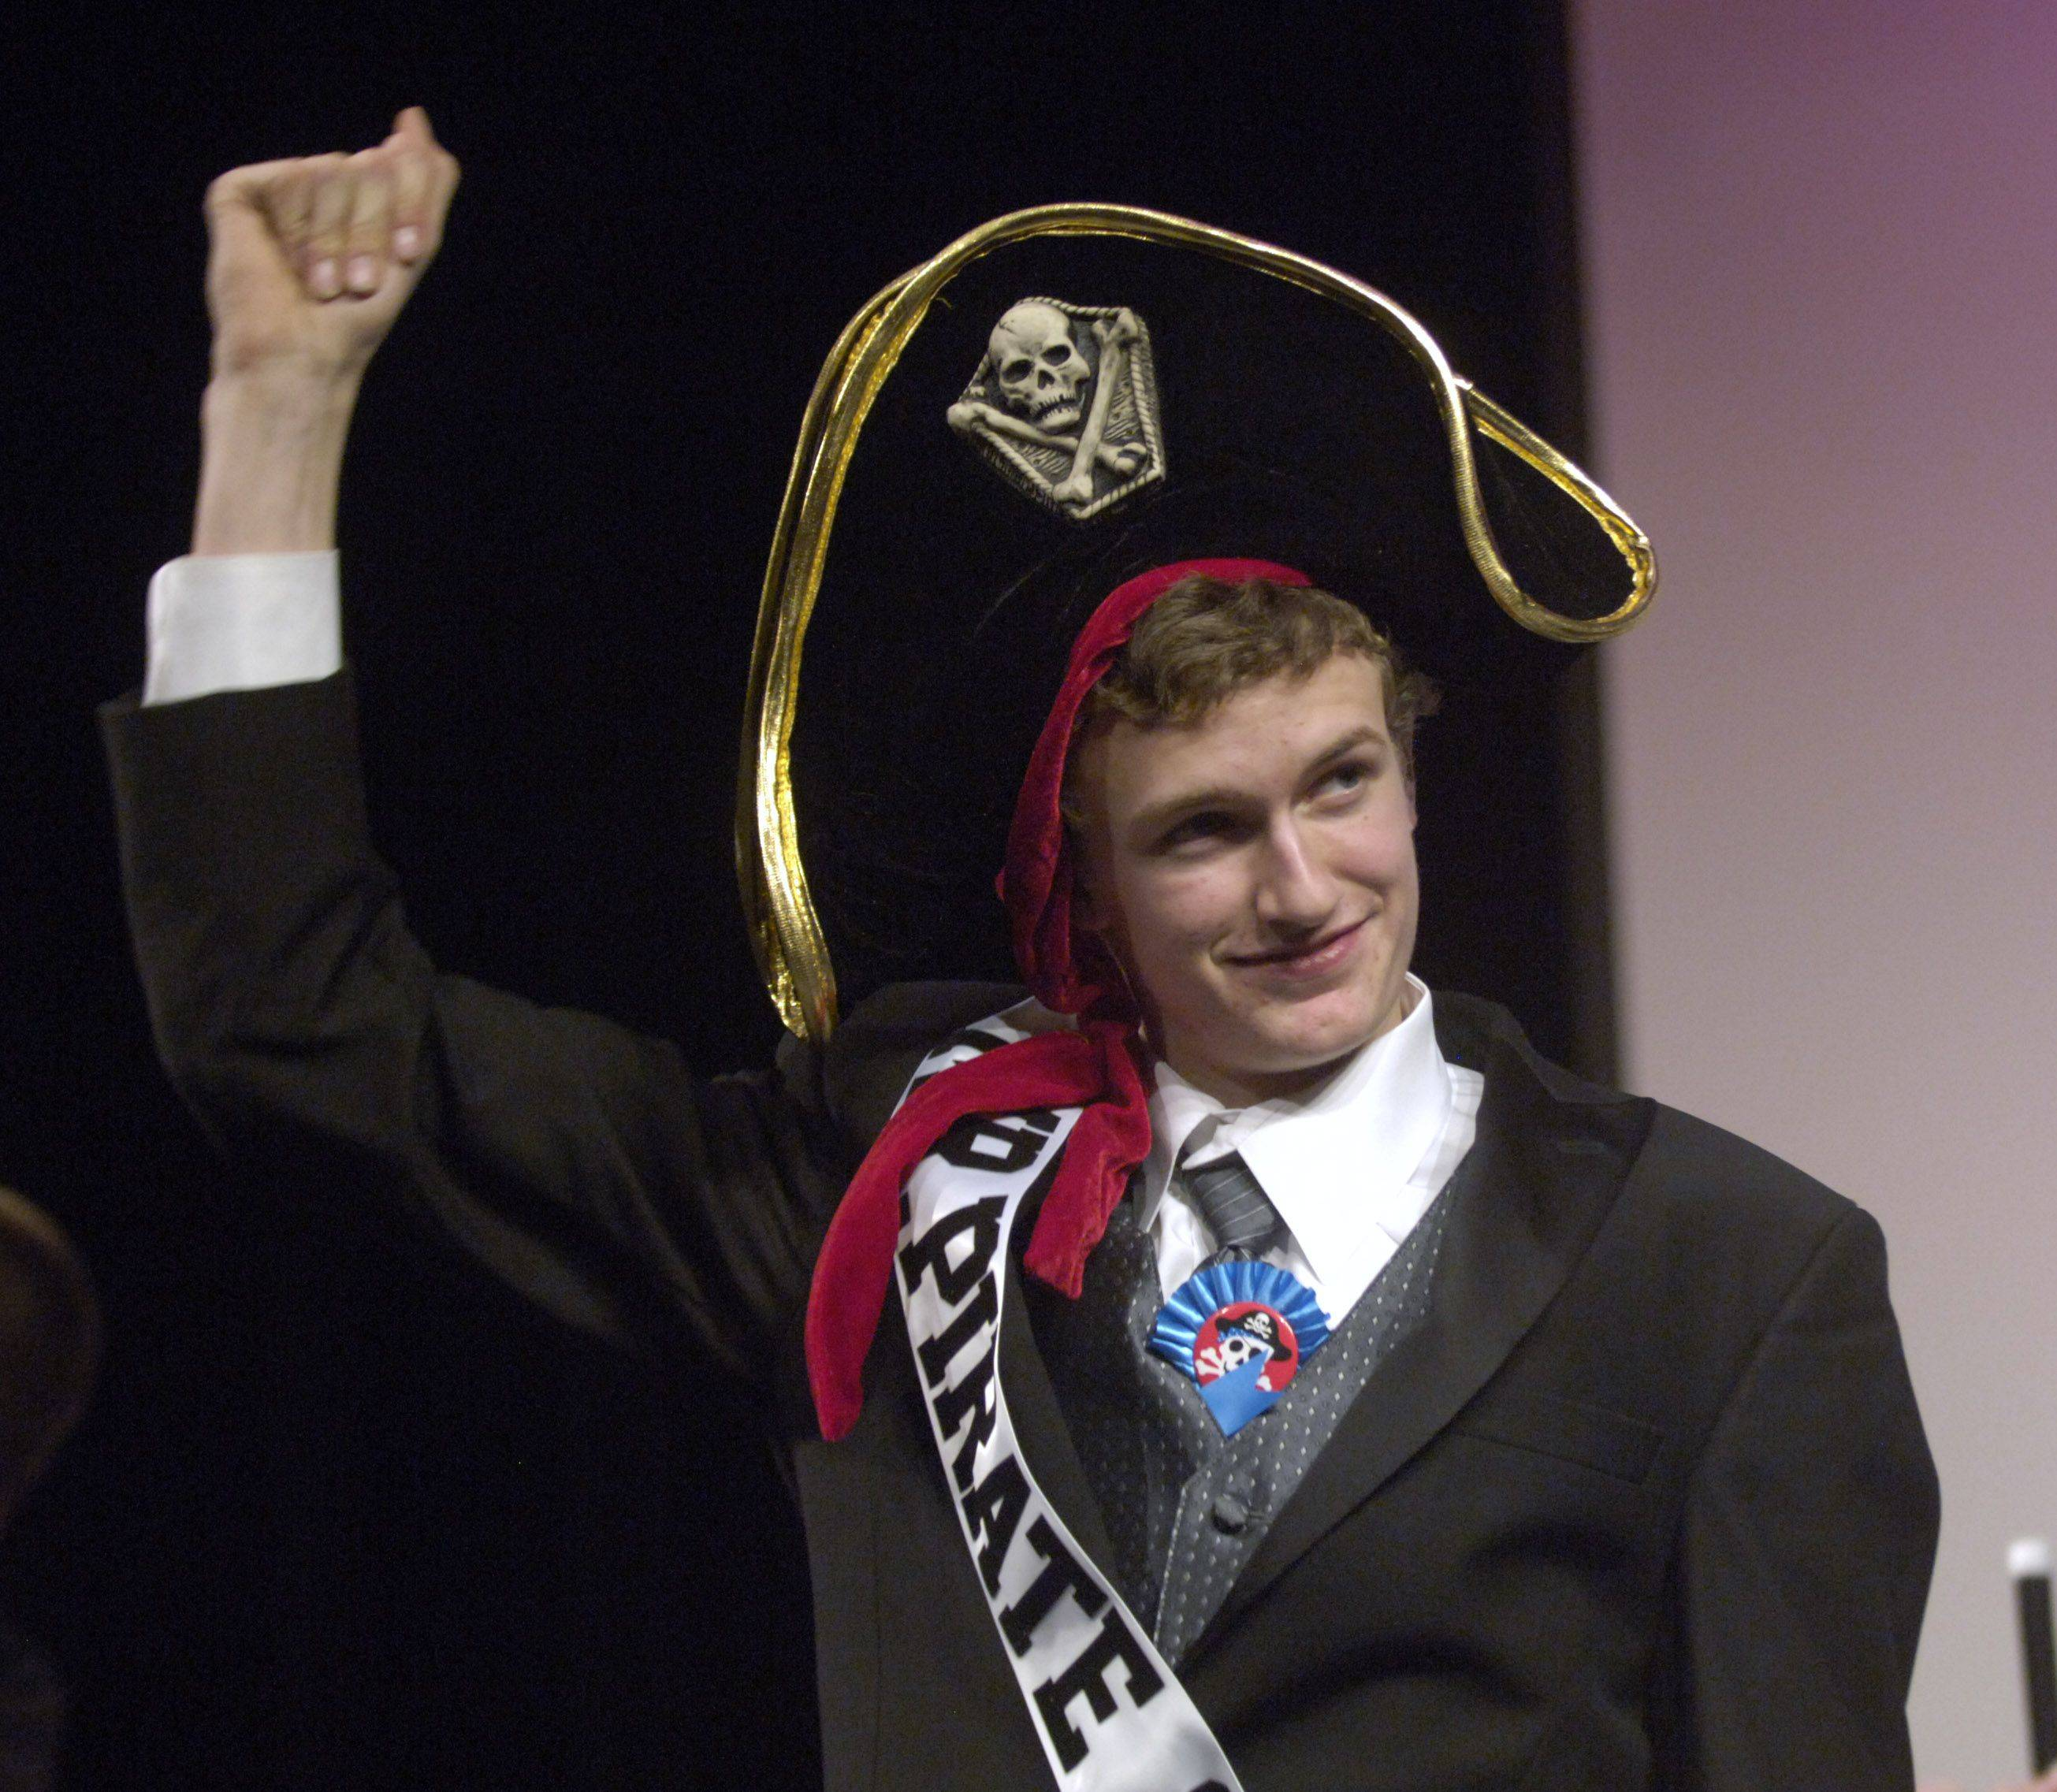 Joe Daumen wins the Mr. Pirate contest at Palatine High School Tuesday.